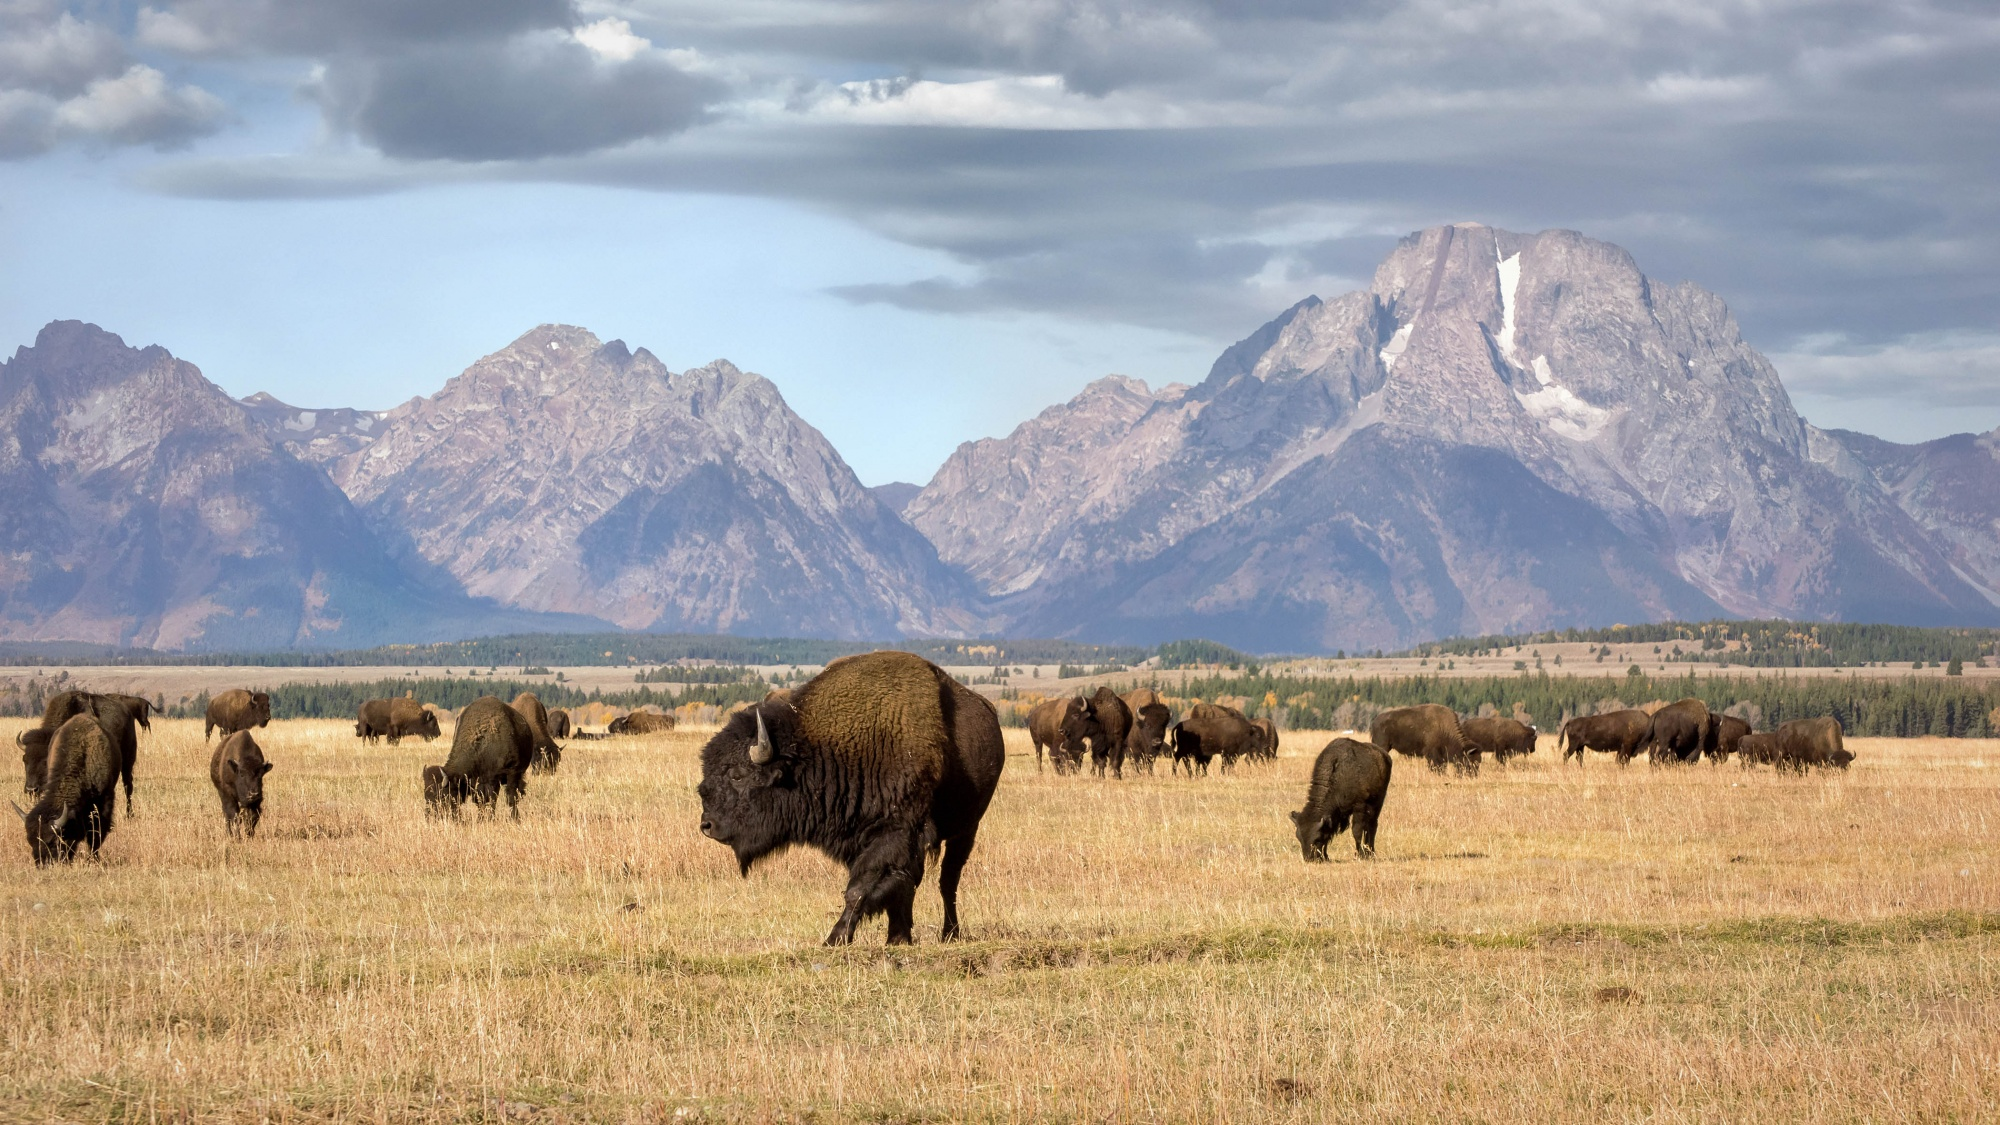 Best remote destinations, wild bison roaming freely in Grand Teton National Park Wyoming